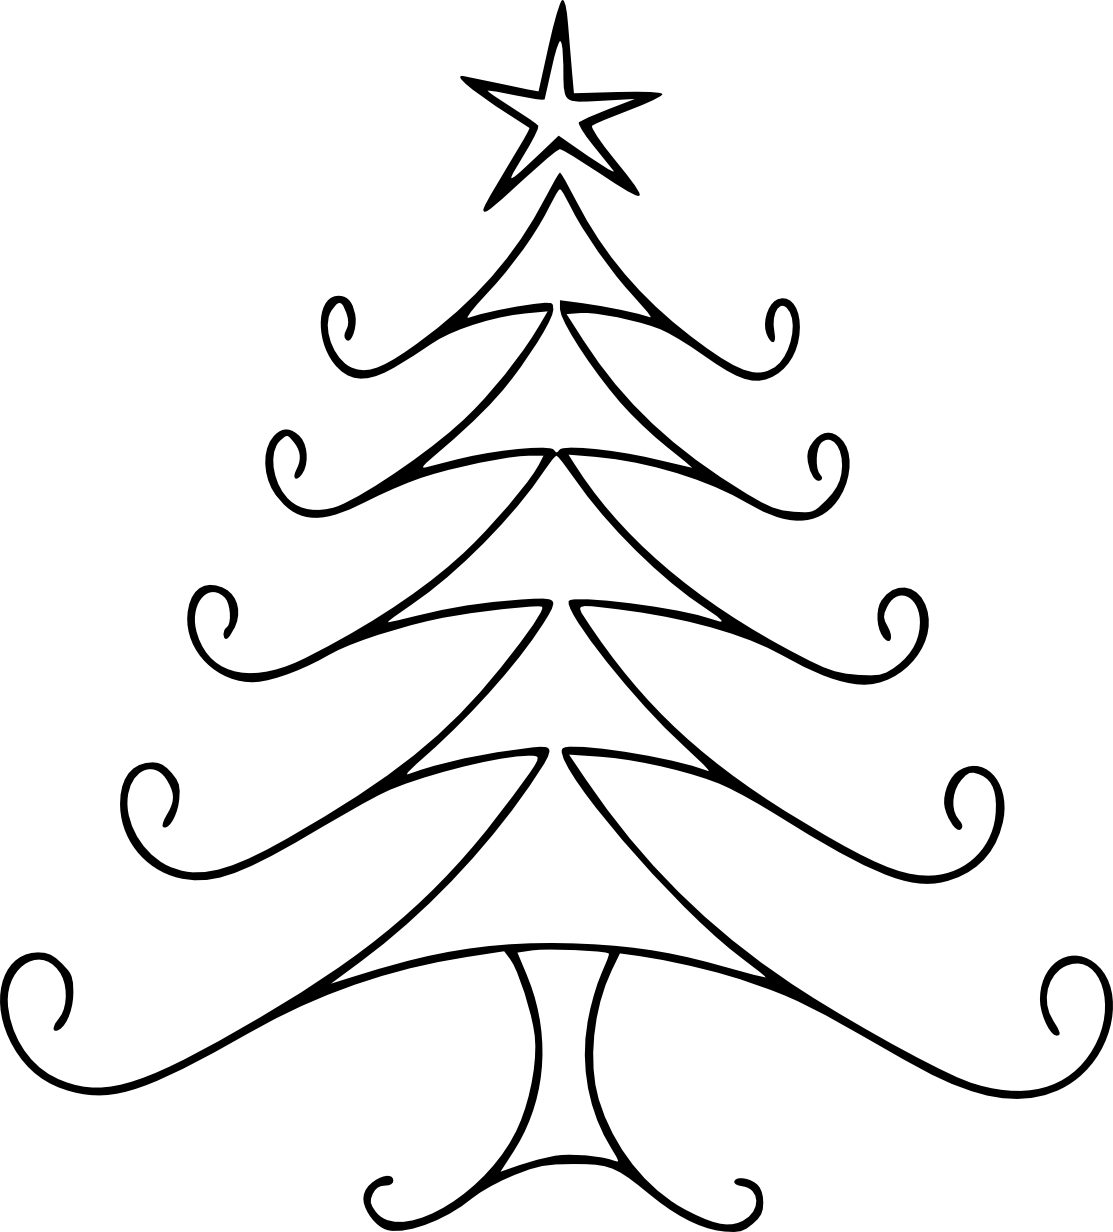 Christmas money tree clipart black and white clipart transparent library Christmas Line Drawing - Cliparts. | CRAFT - HOLIDAYS | Pinterest ... clipart transparent library